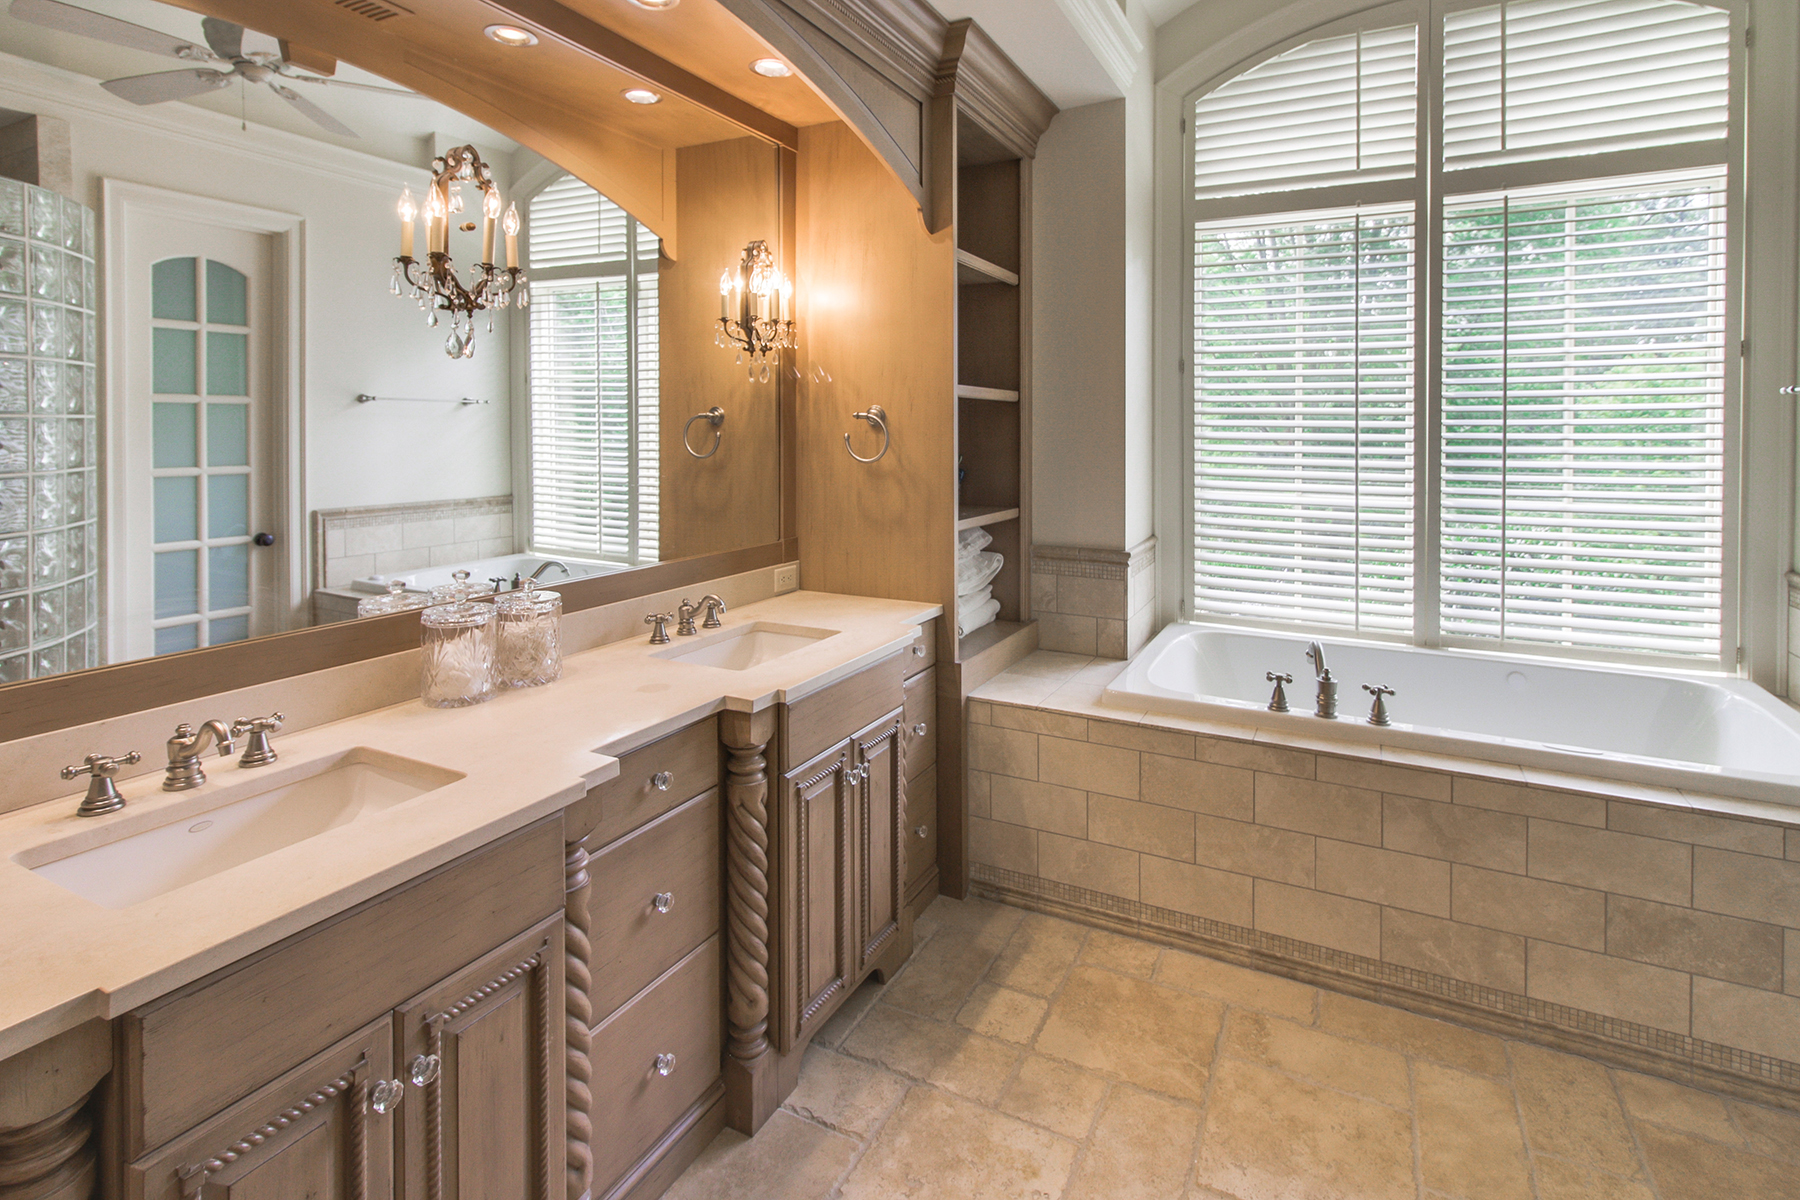 Additional photo for property listing at THE CLIFFS AT WALNUT COVE 712  Craggyside Ln,  Arden, North Carolina 28704 United States